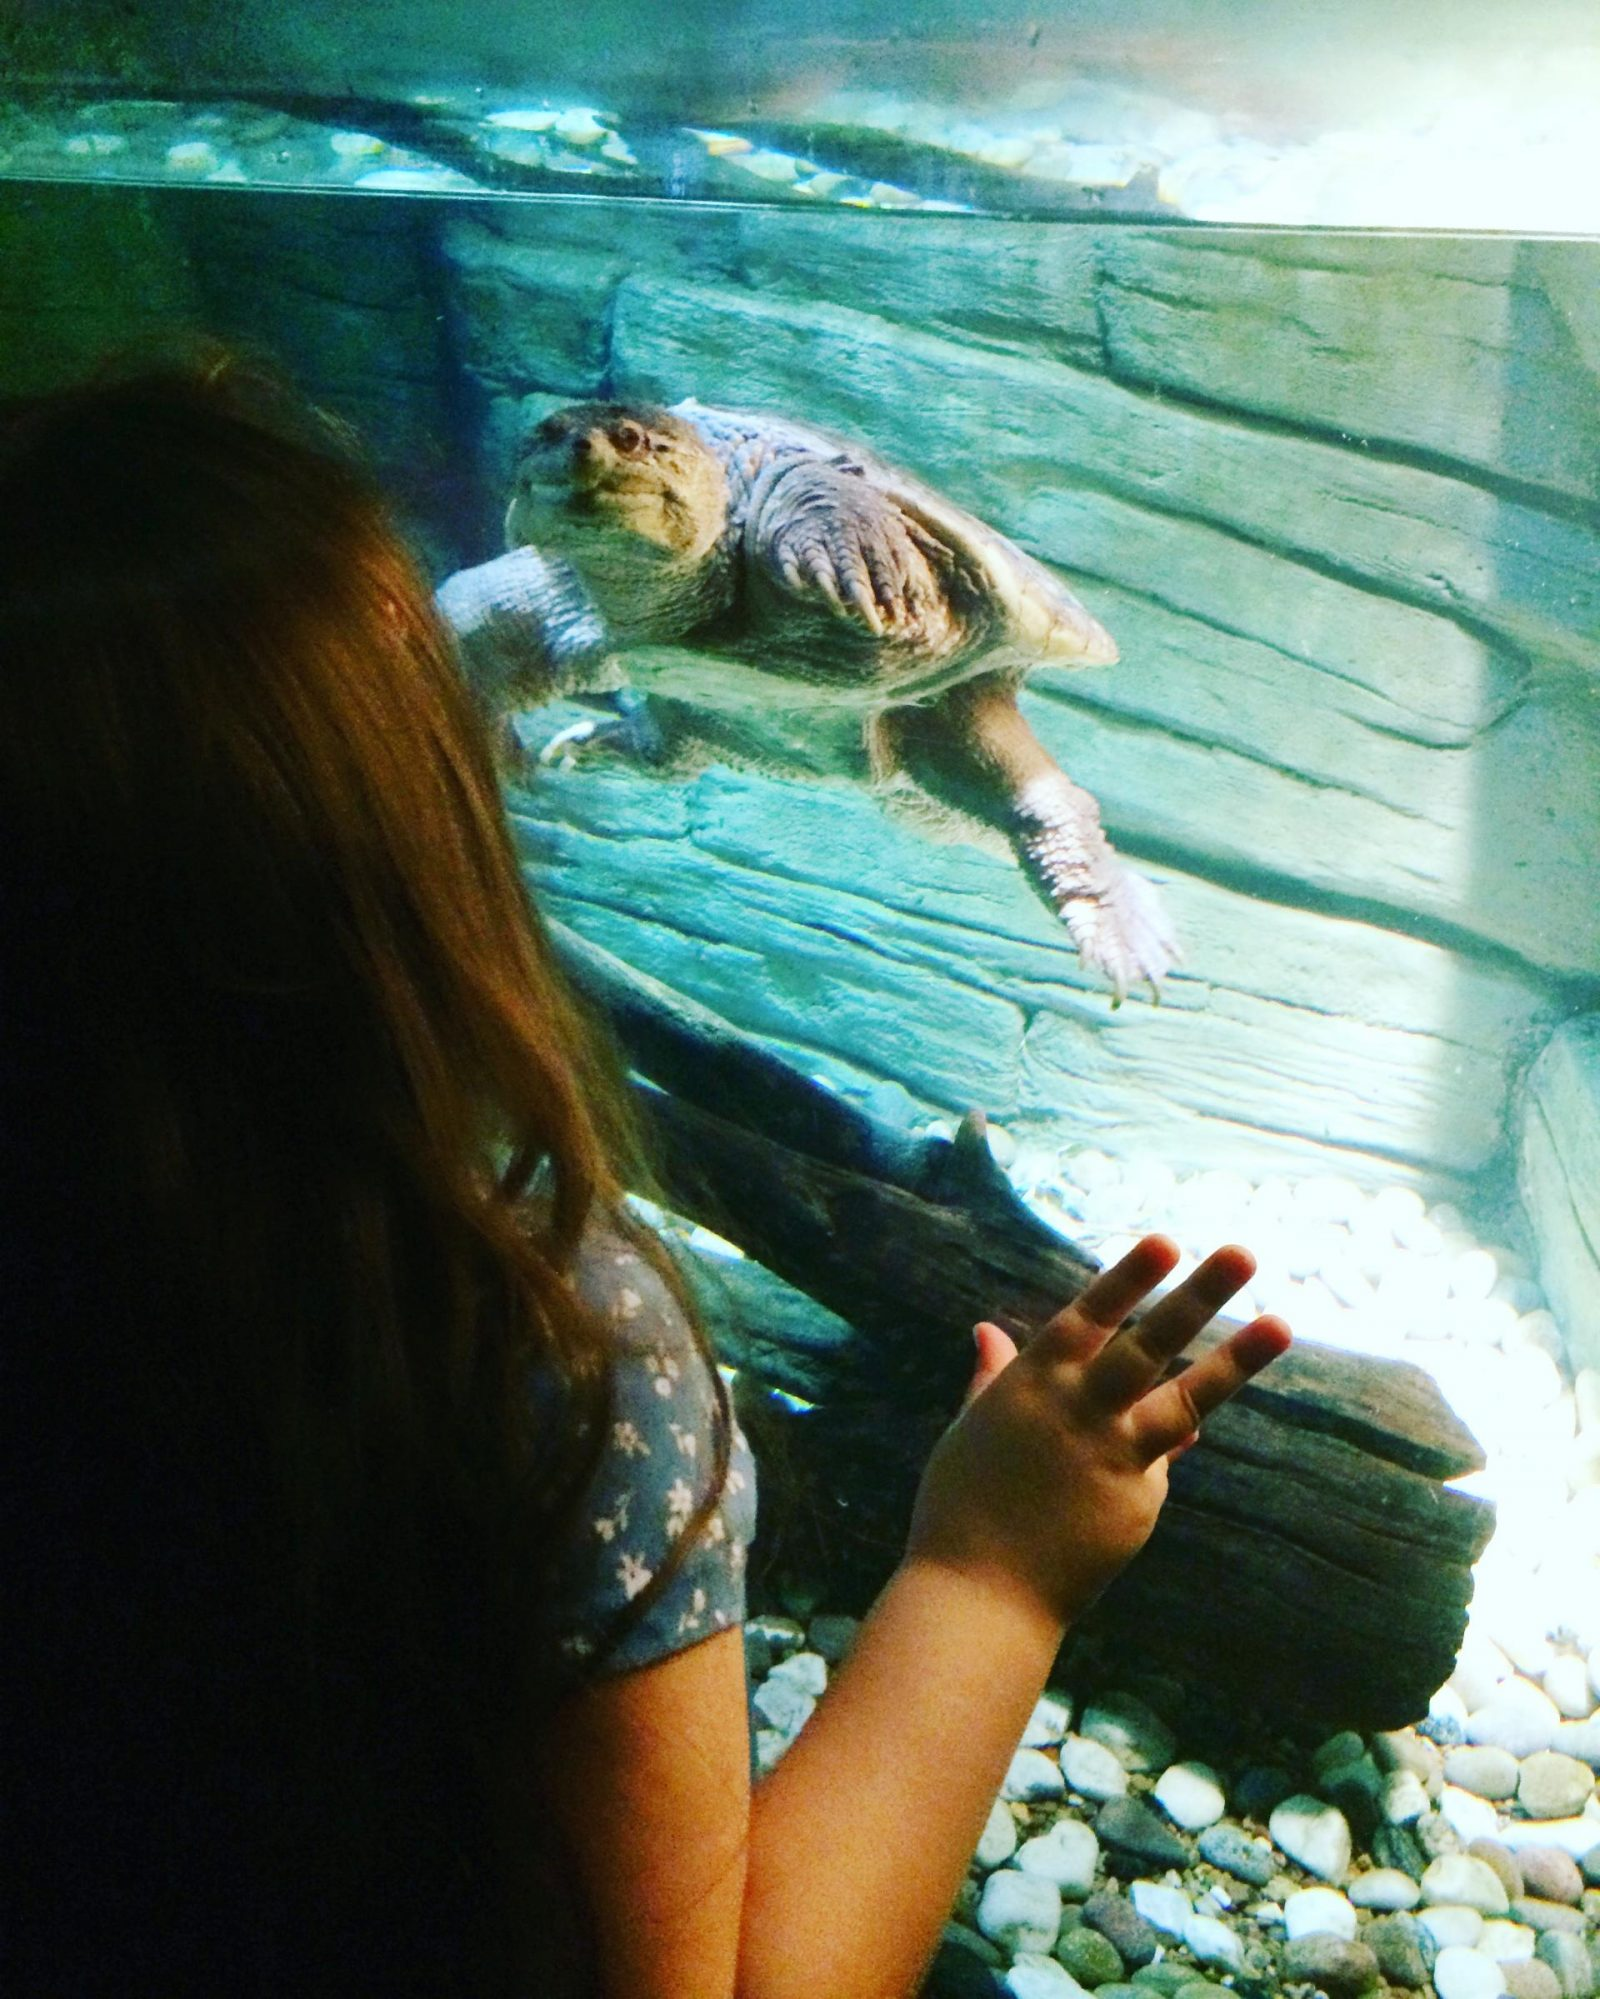 Can you #BraveTheBugs at the new Rainforest Adventure at Sea Life London?